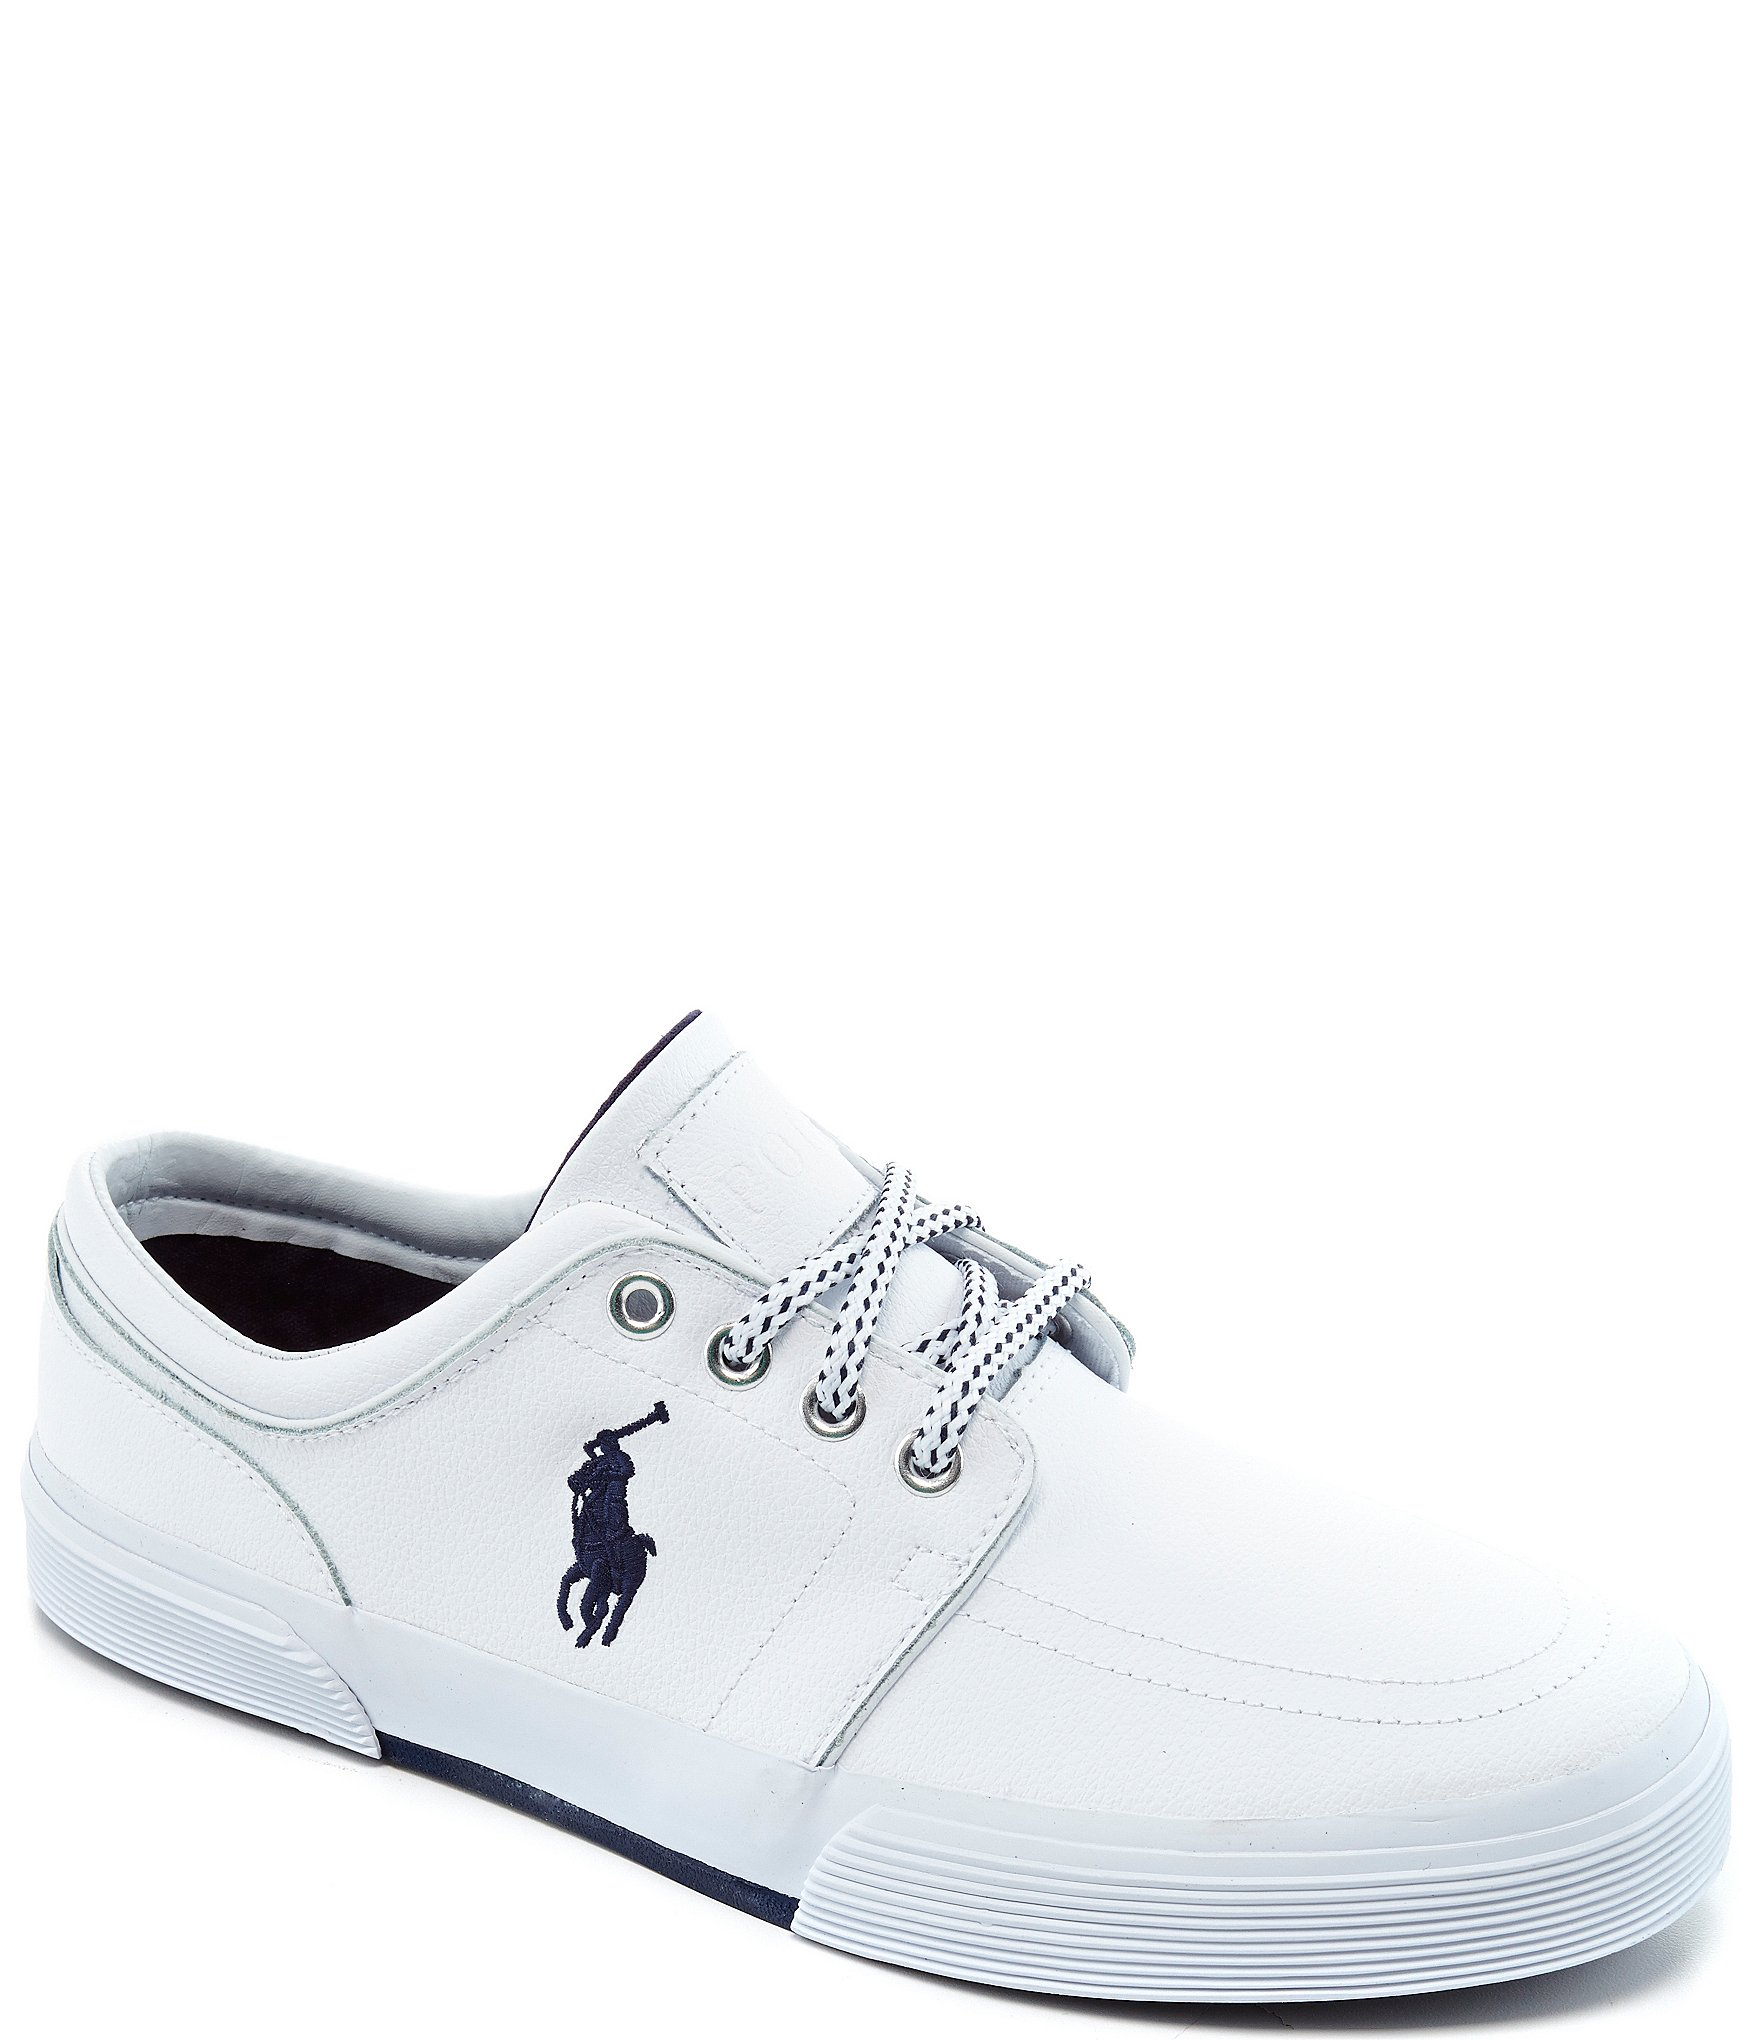 8c33b411f2c05e Polo Ralph Lauren Men s Shoes